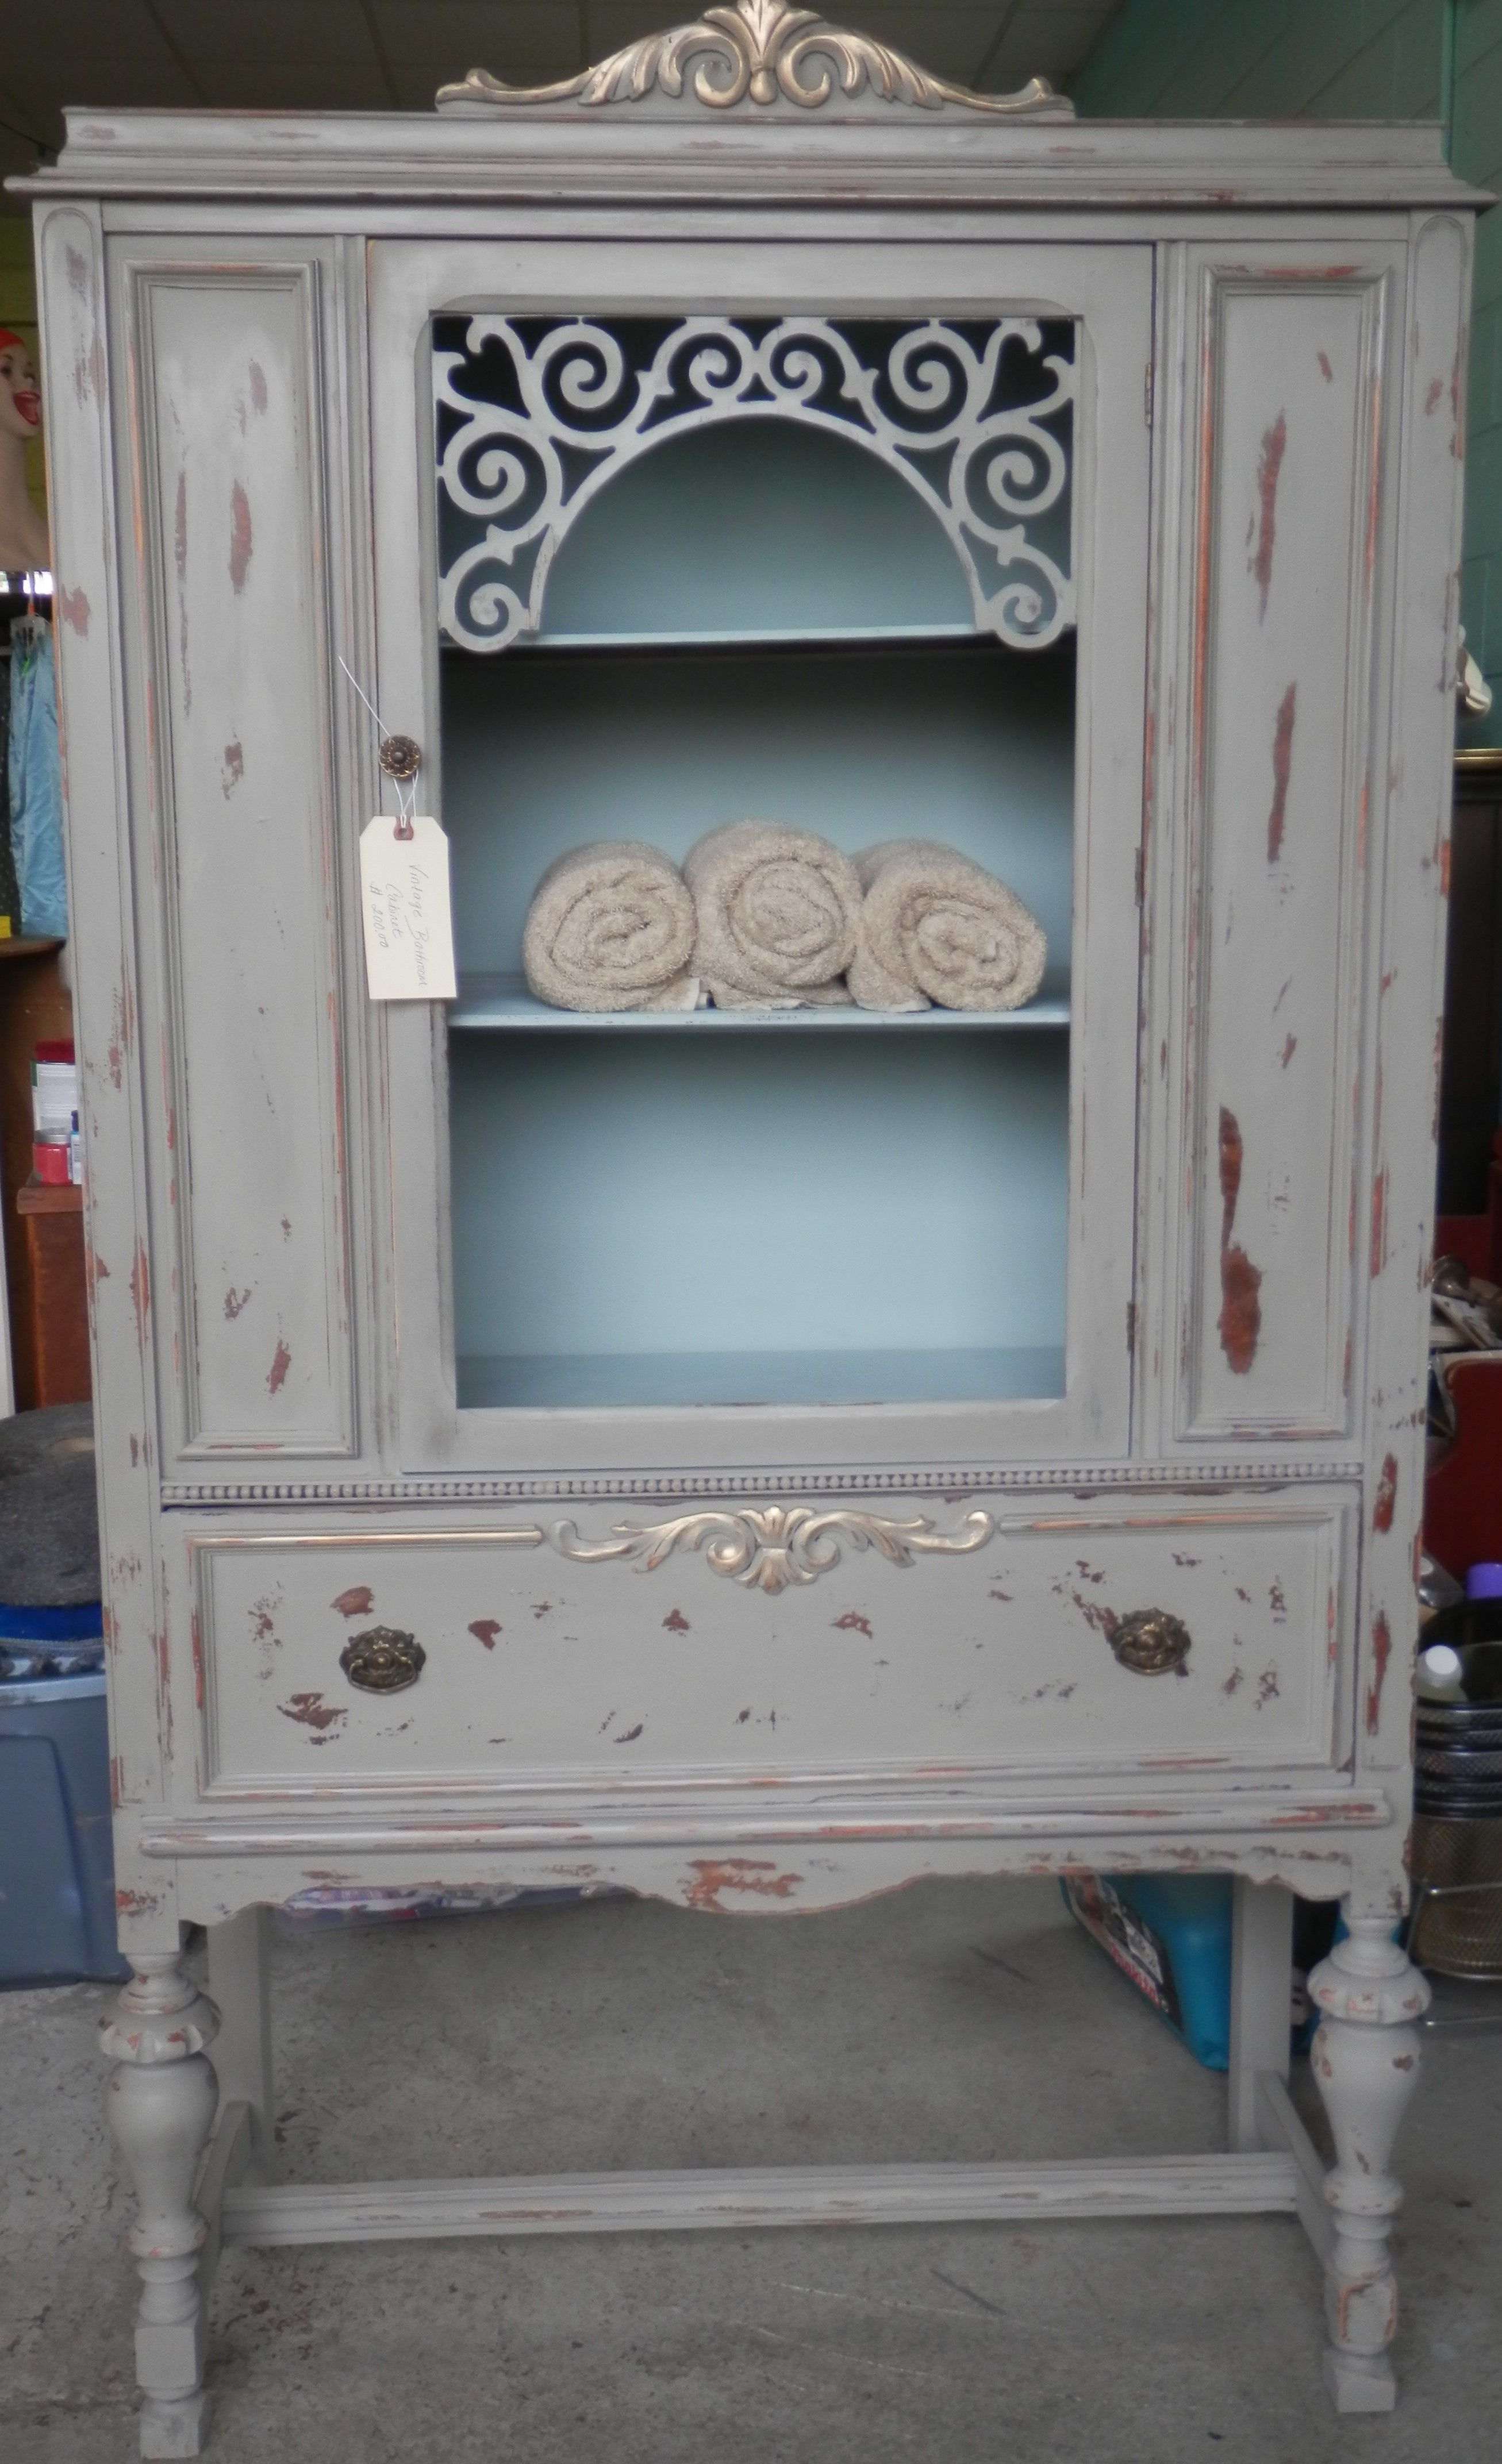 Pin By Lucy Rigby On Milk Chalk Mineral Paint Painted Furniture Antique China Cabinets Annie Sloan Painted Furniture